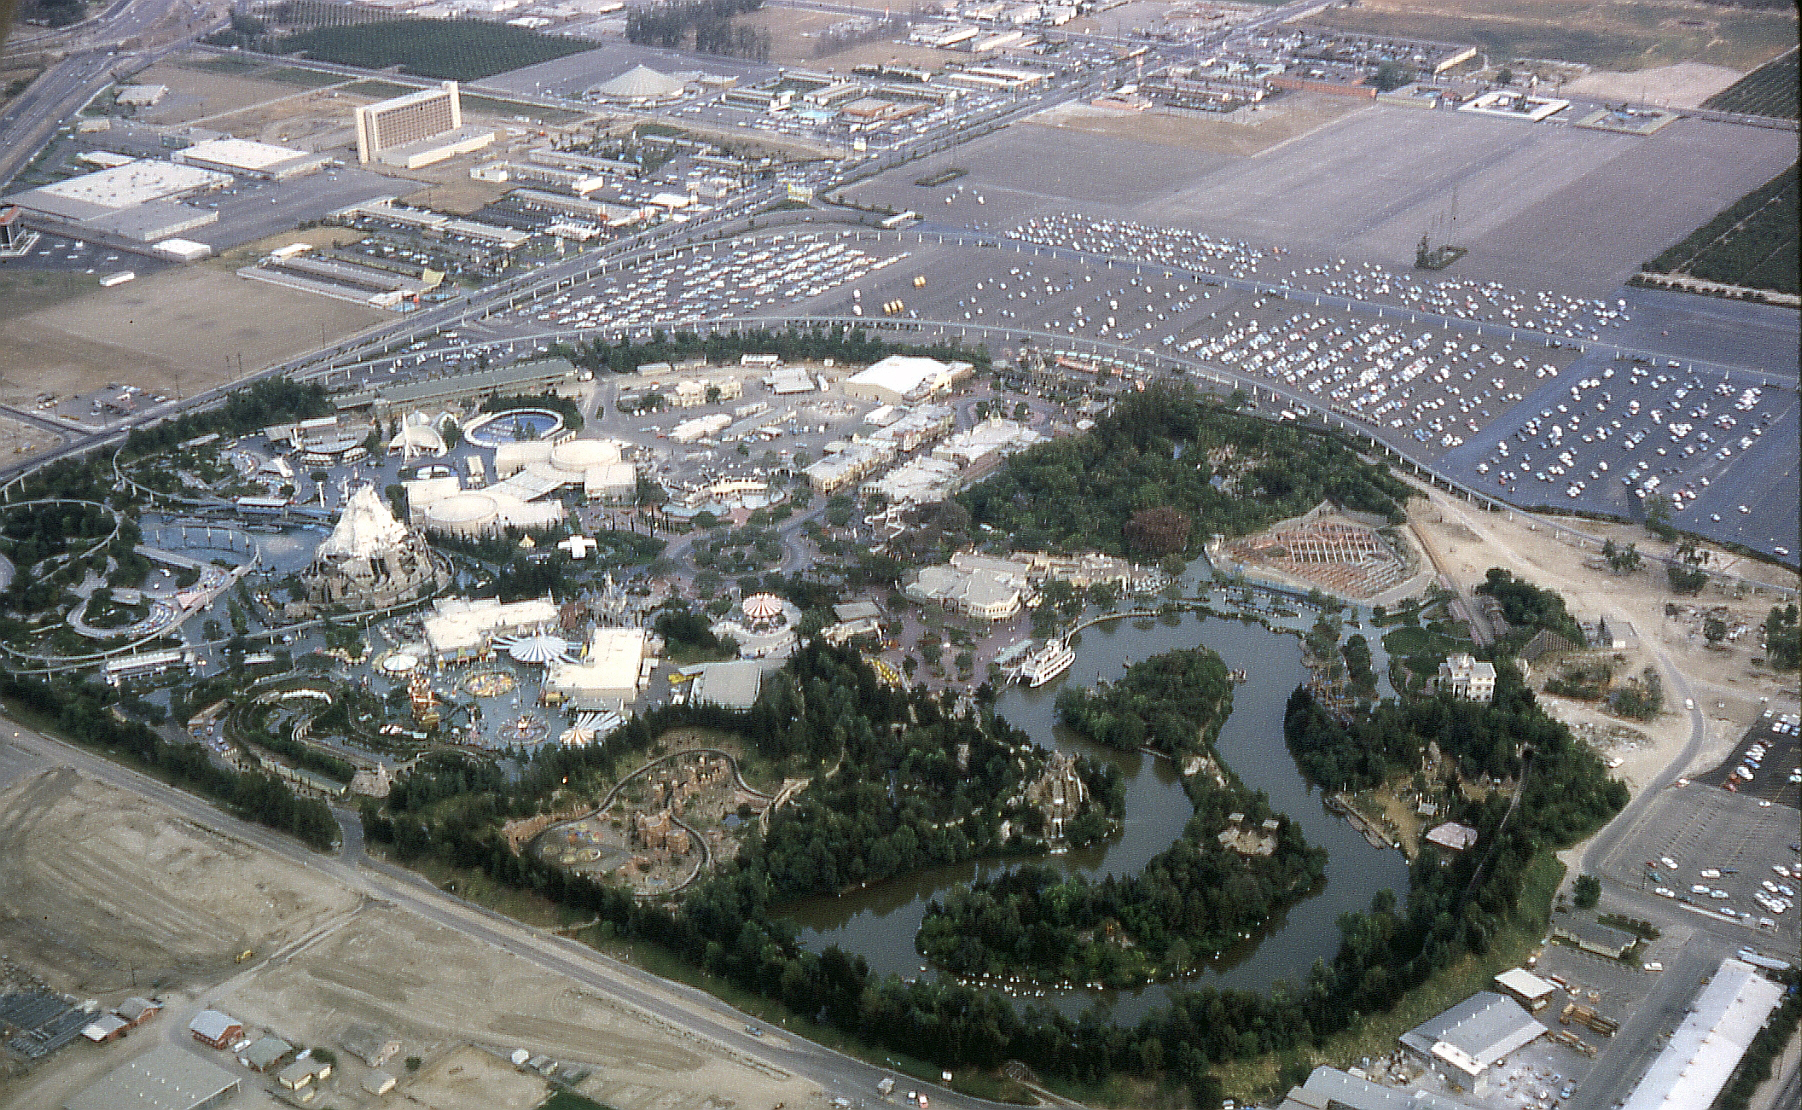 Aerial view of Disneyland in 1963, located in Anaheim, California, United States.